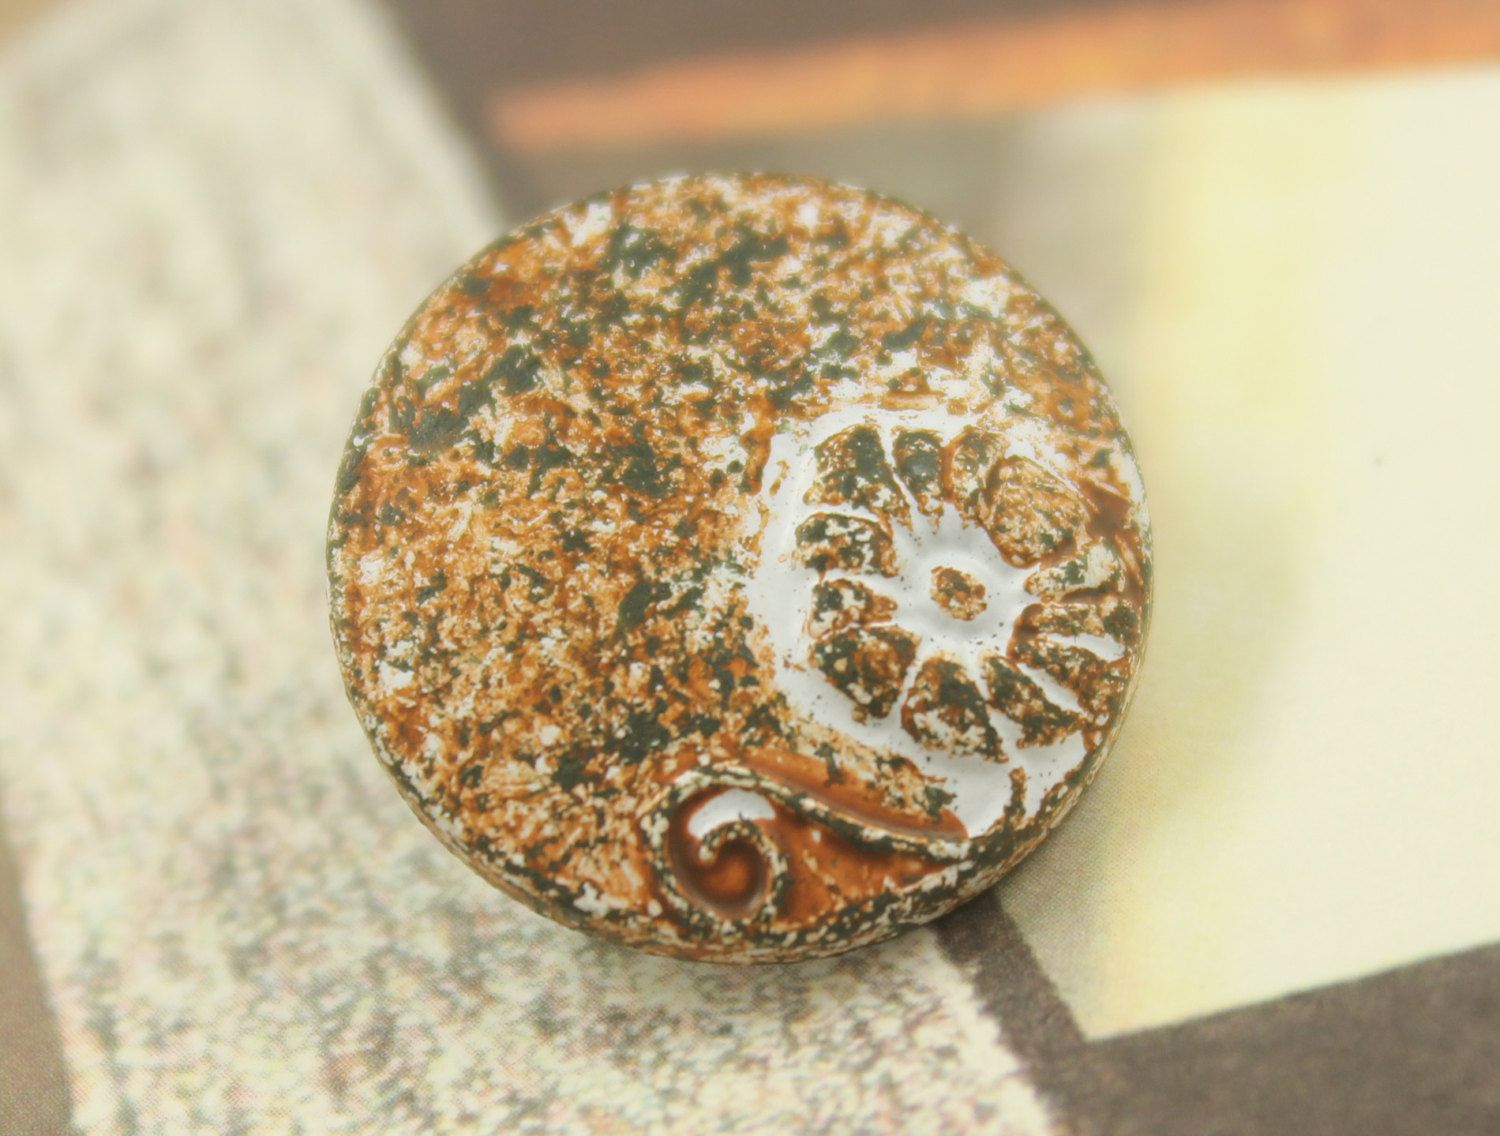 Metal Buttons - Morning Glory White Rust Metal Shank Buttons - 0.79 inch - 6 pcs by Lyanwood, $6.00